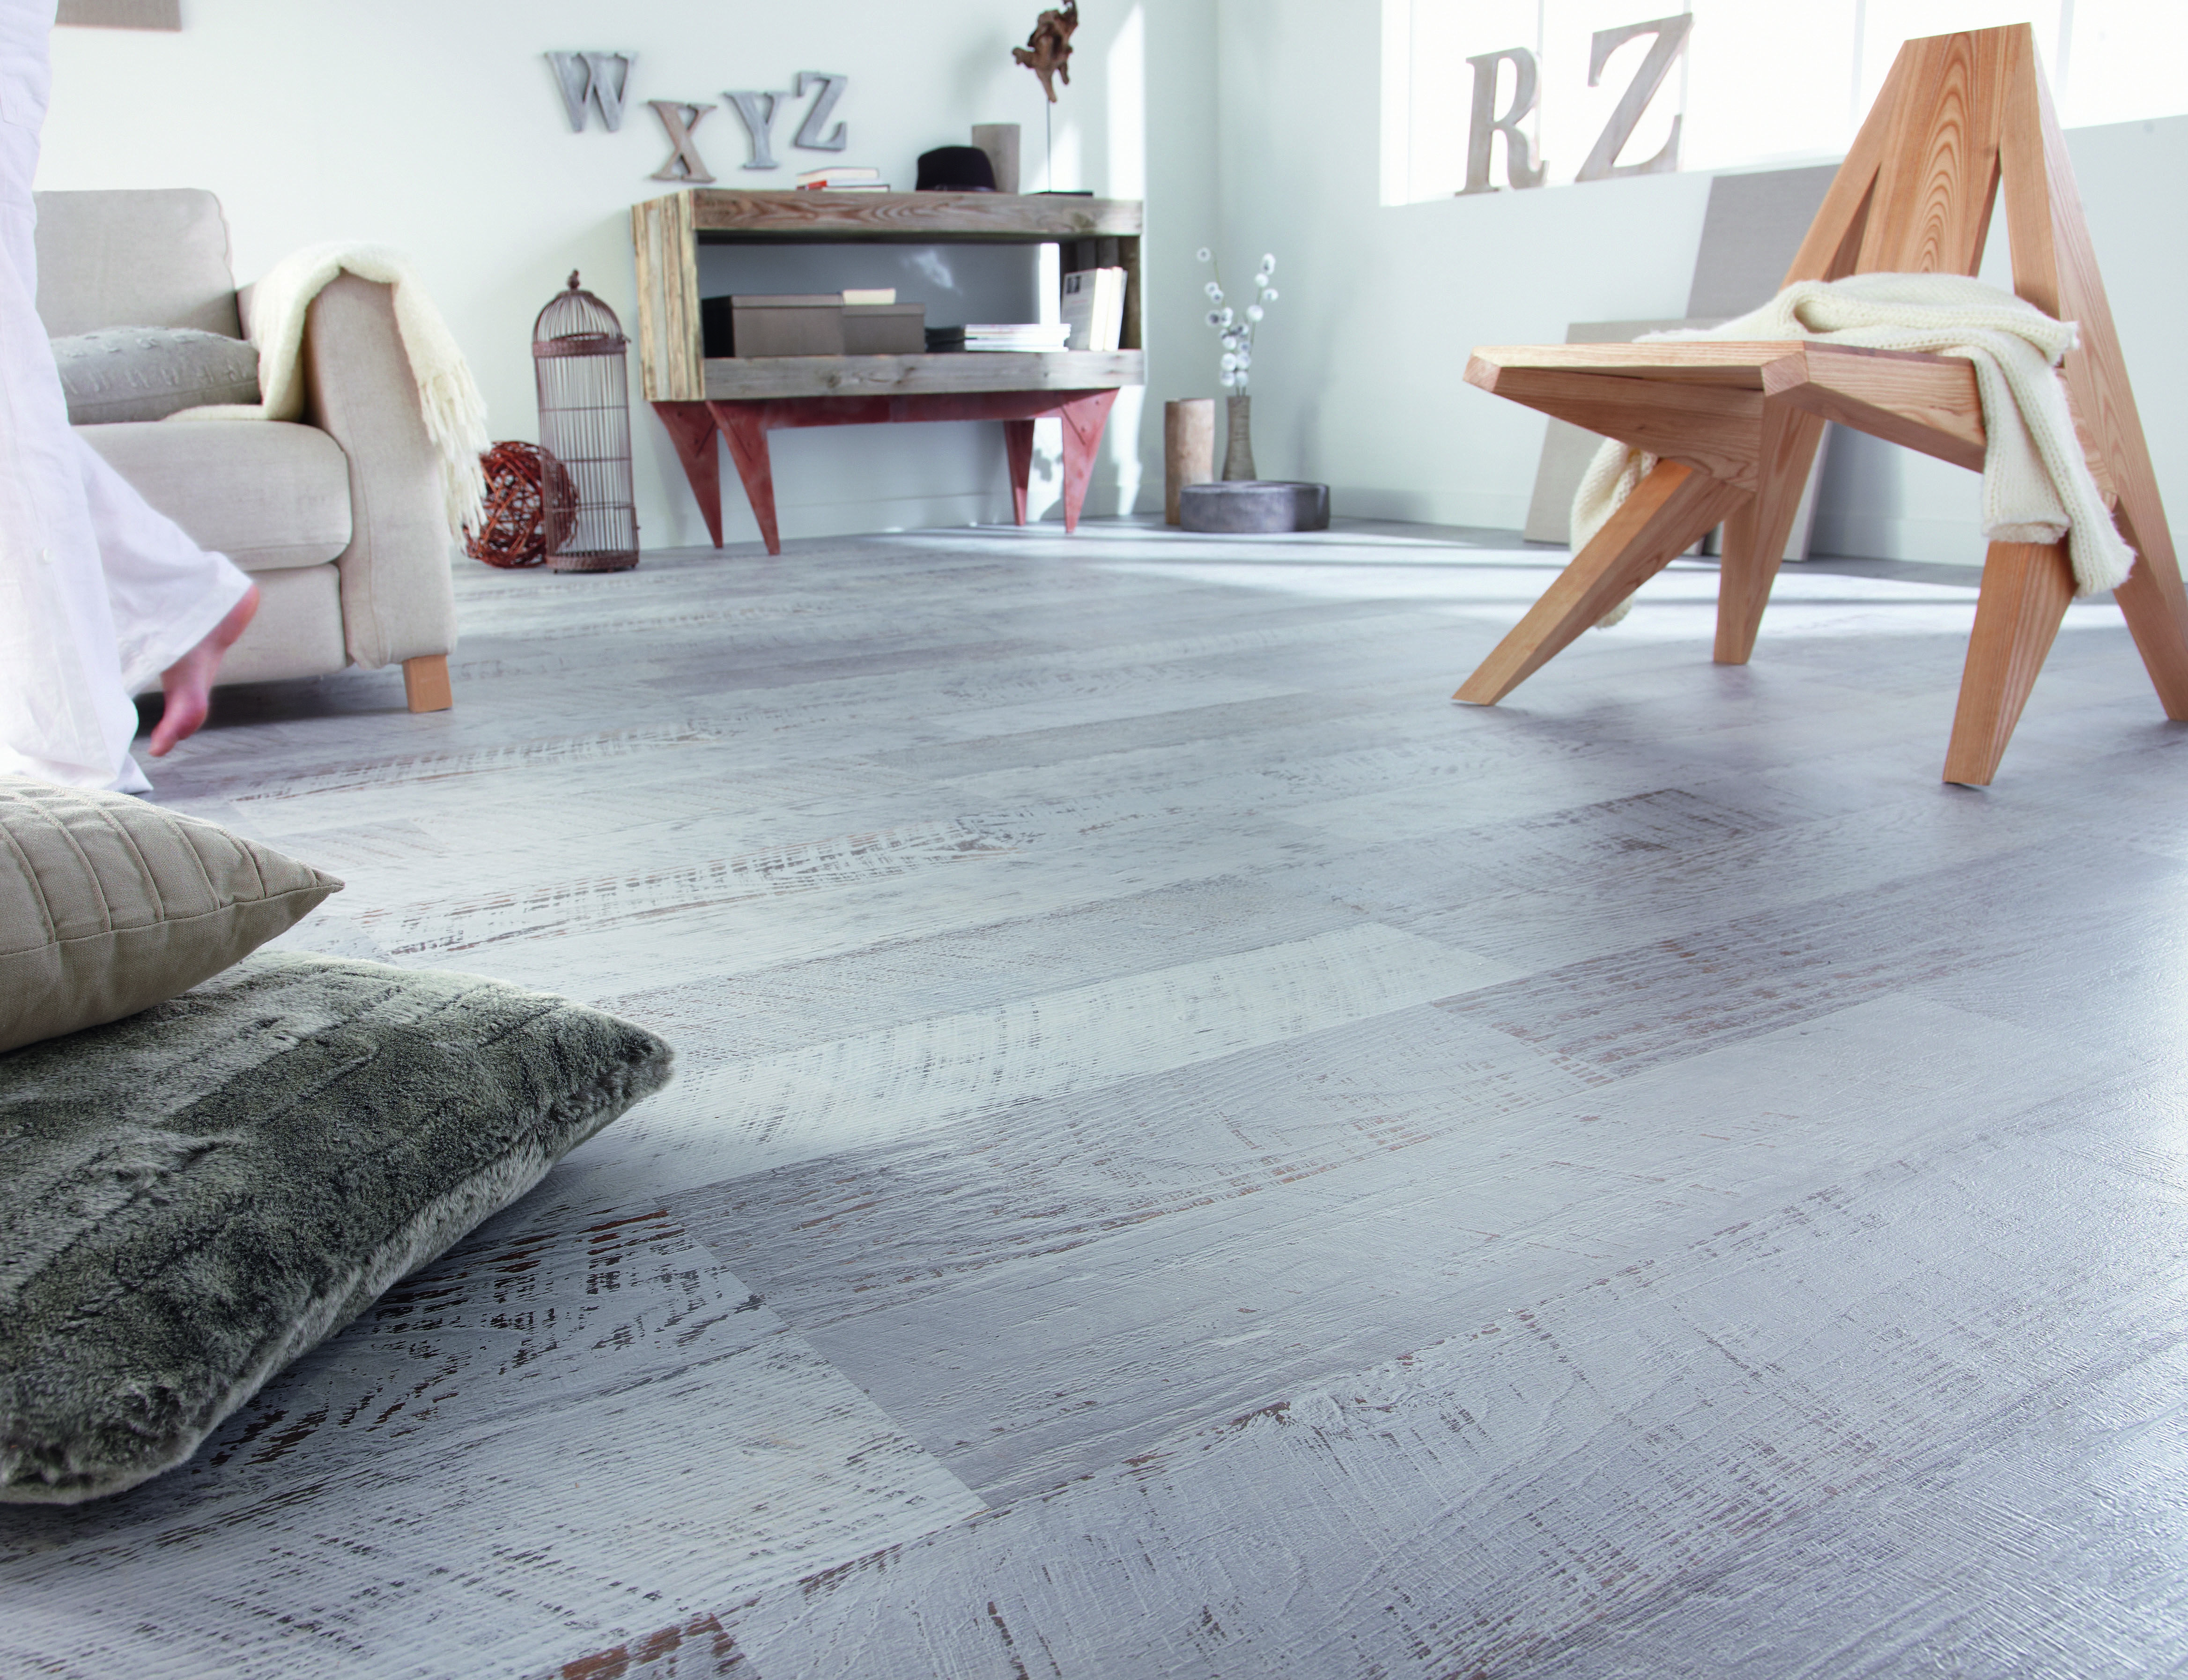 laminate living flooring go banglow dha floors in for comfortable home dream it properties